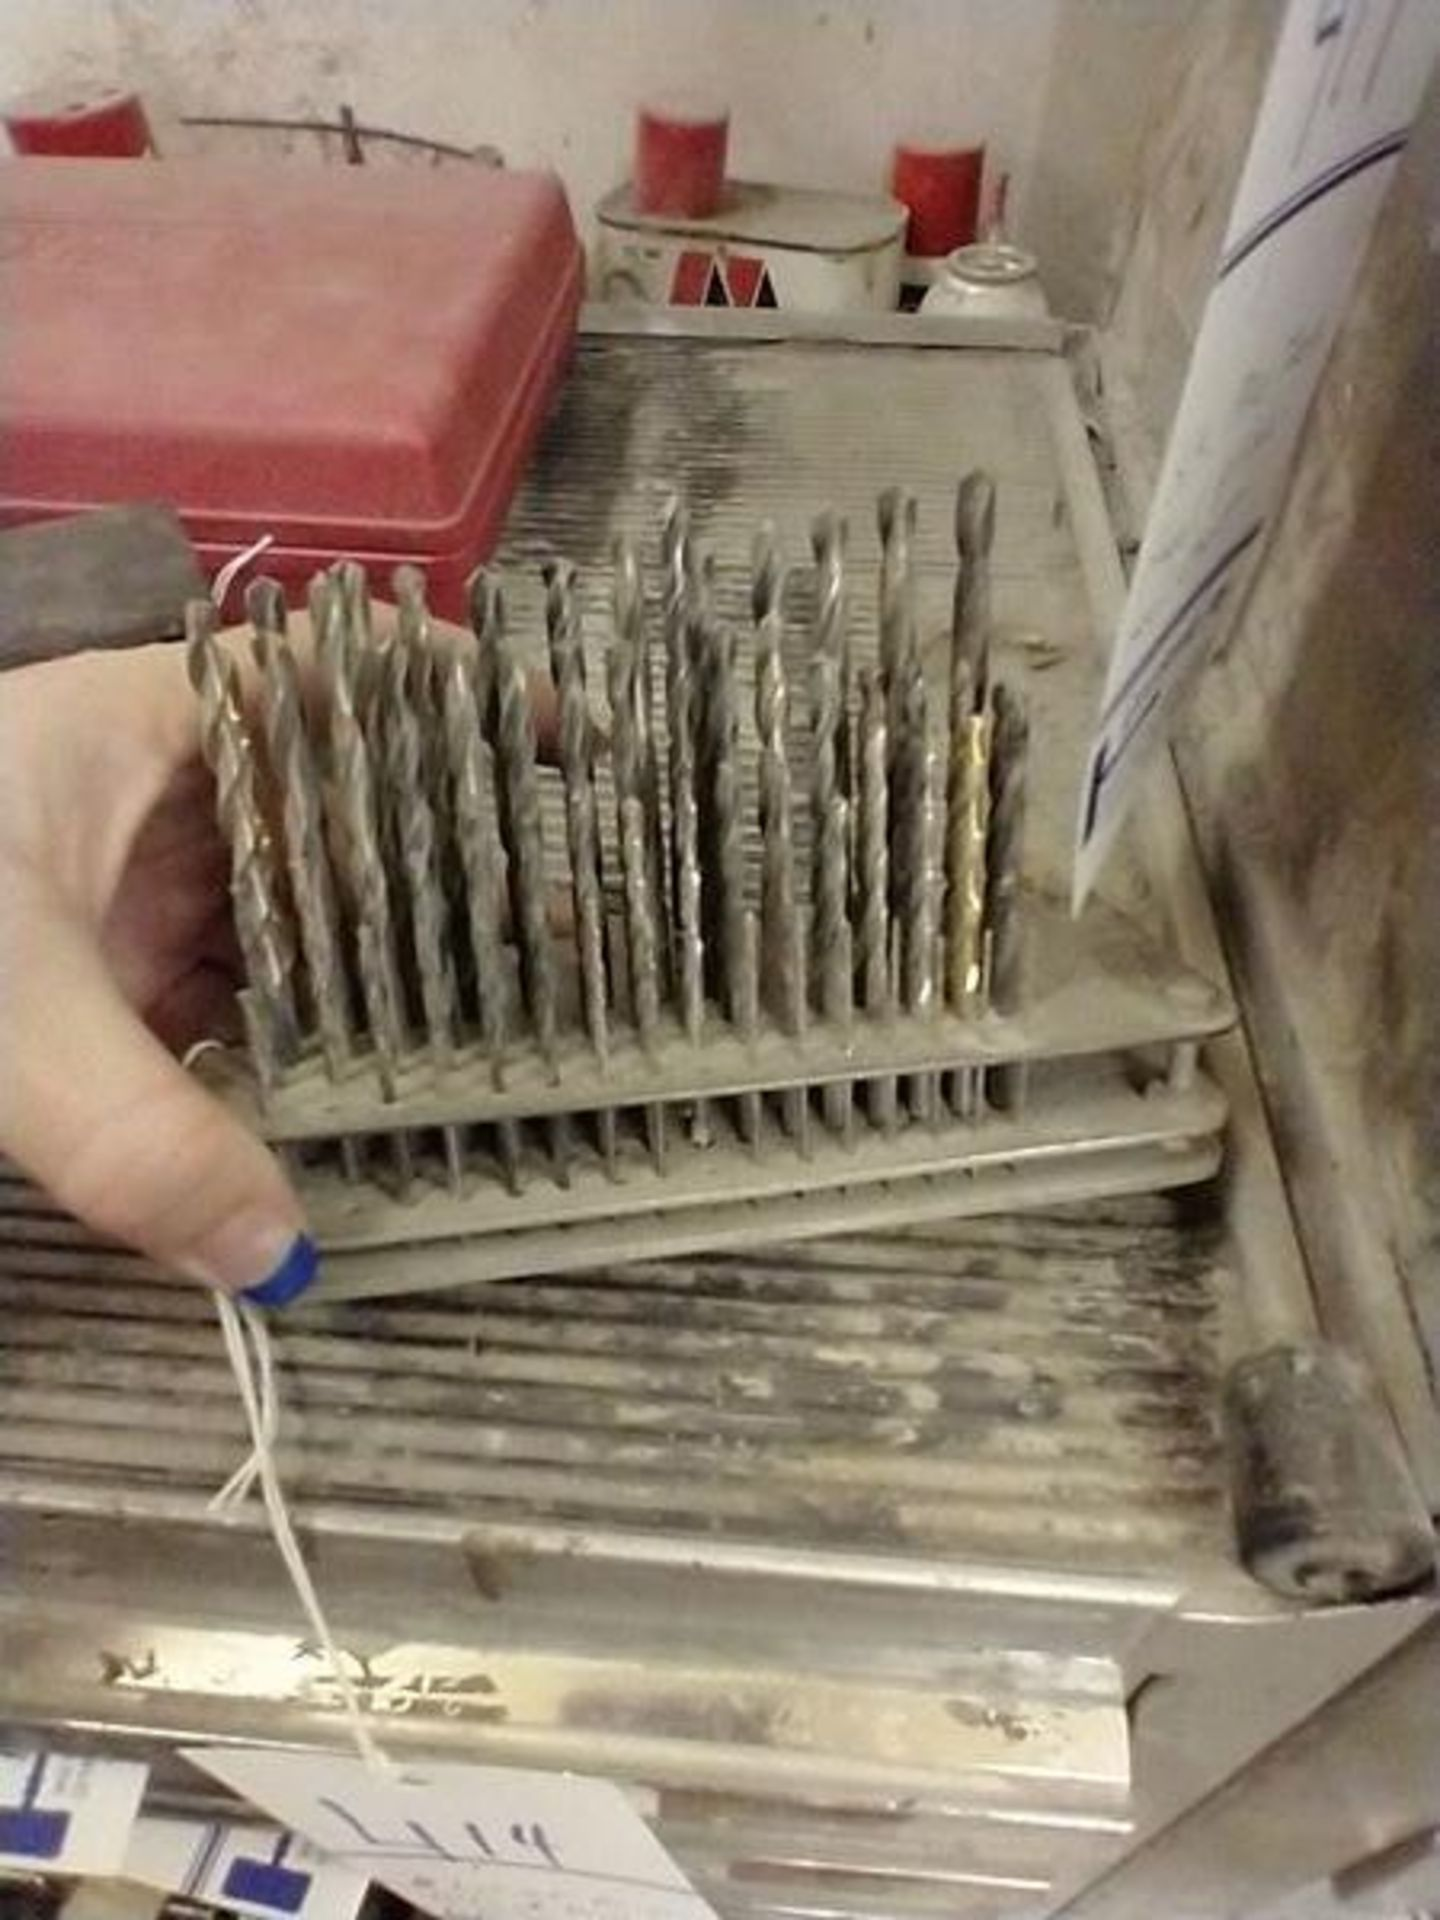 LOT OF DRILL BITS, DRILL KEYS AND MISC - Image 7 of 7